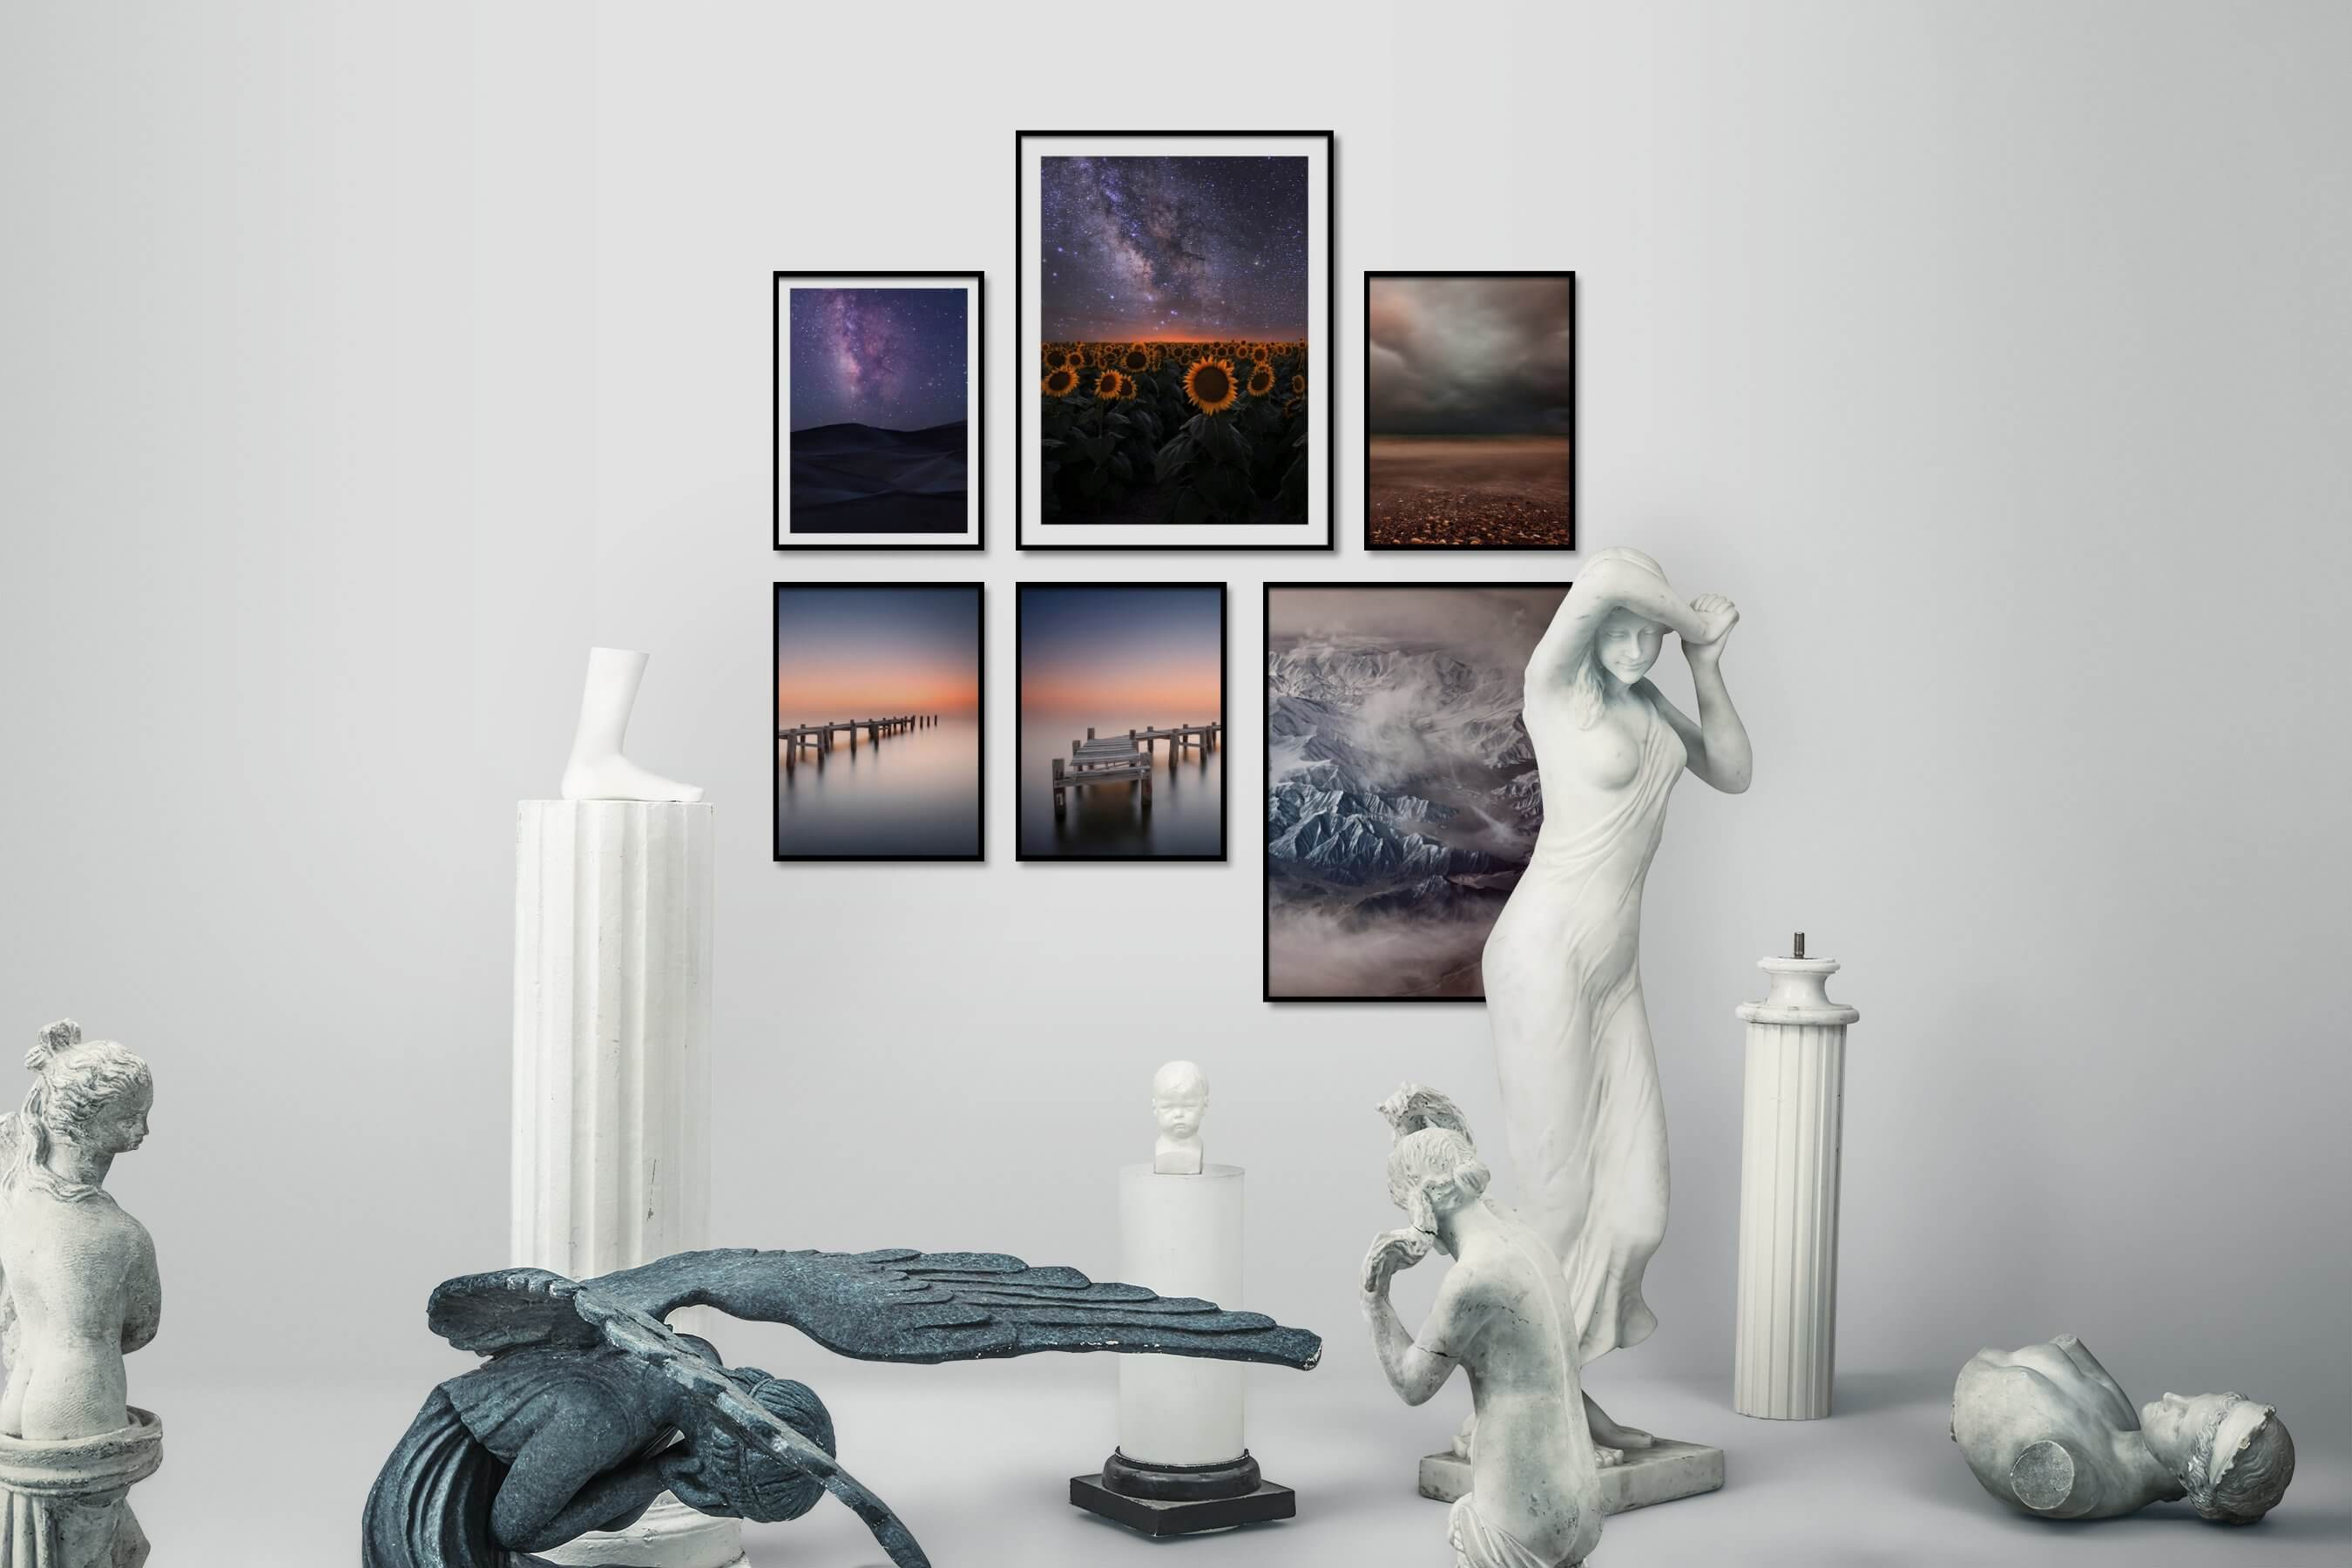 Gallery wall idea with six framed pictures arranged on a wall depicting Nature, Flowers & Plants, Country Life, For the Minimalist, Beach & Water, Mindfulness, and For the Moderate